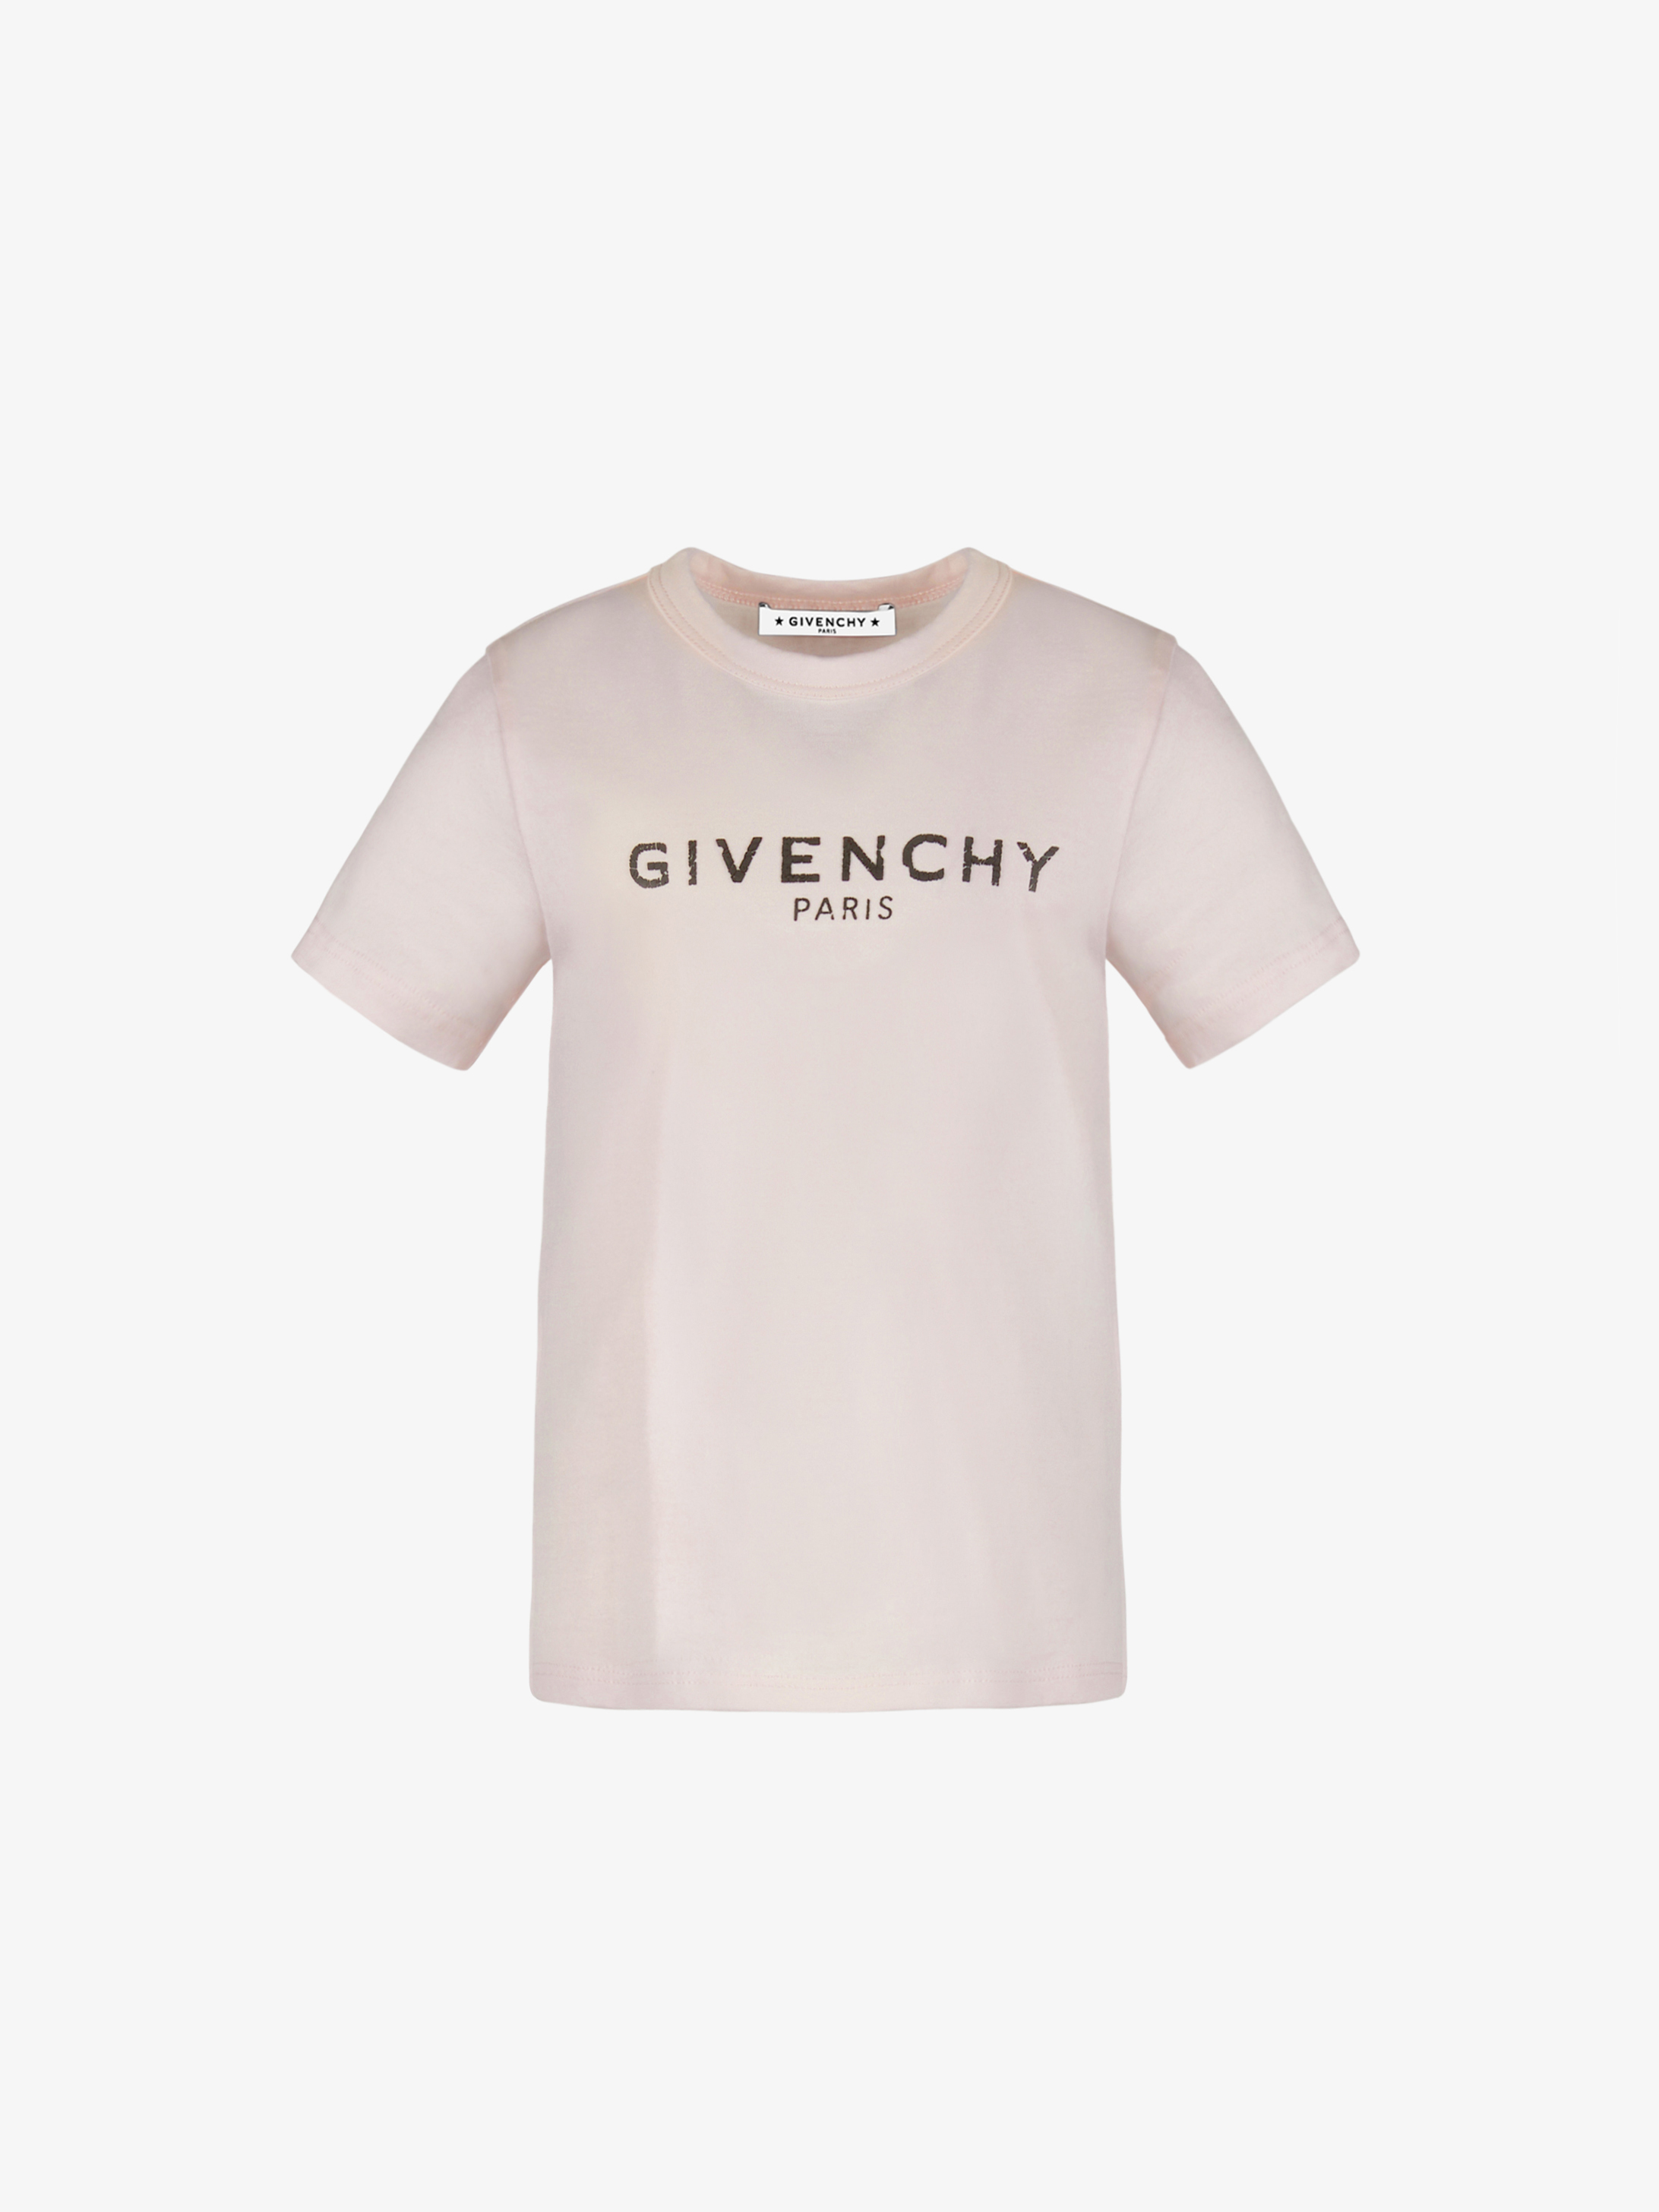 GIVENCHY PARIS t-shirt in cotton jersey